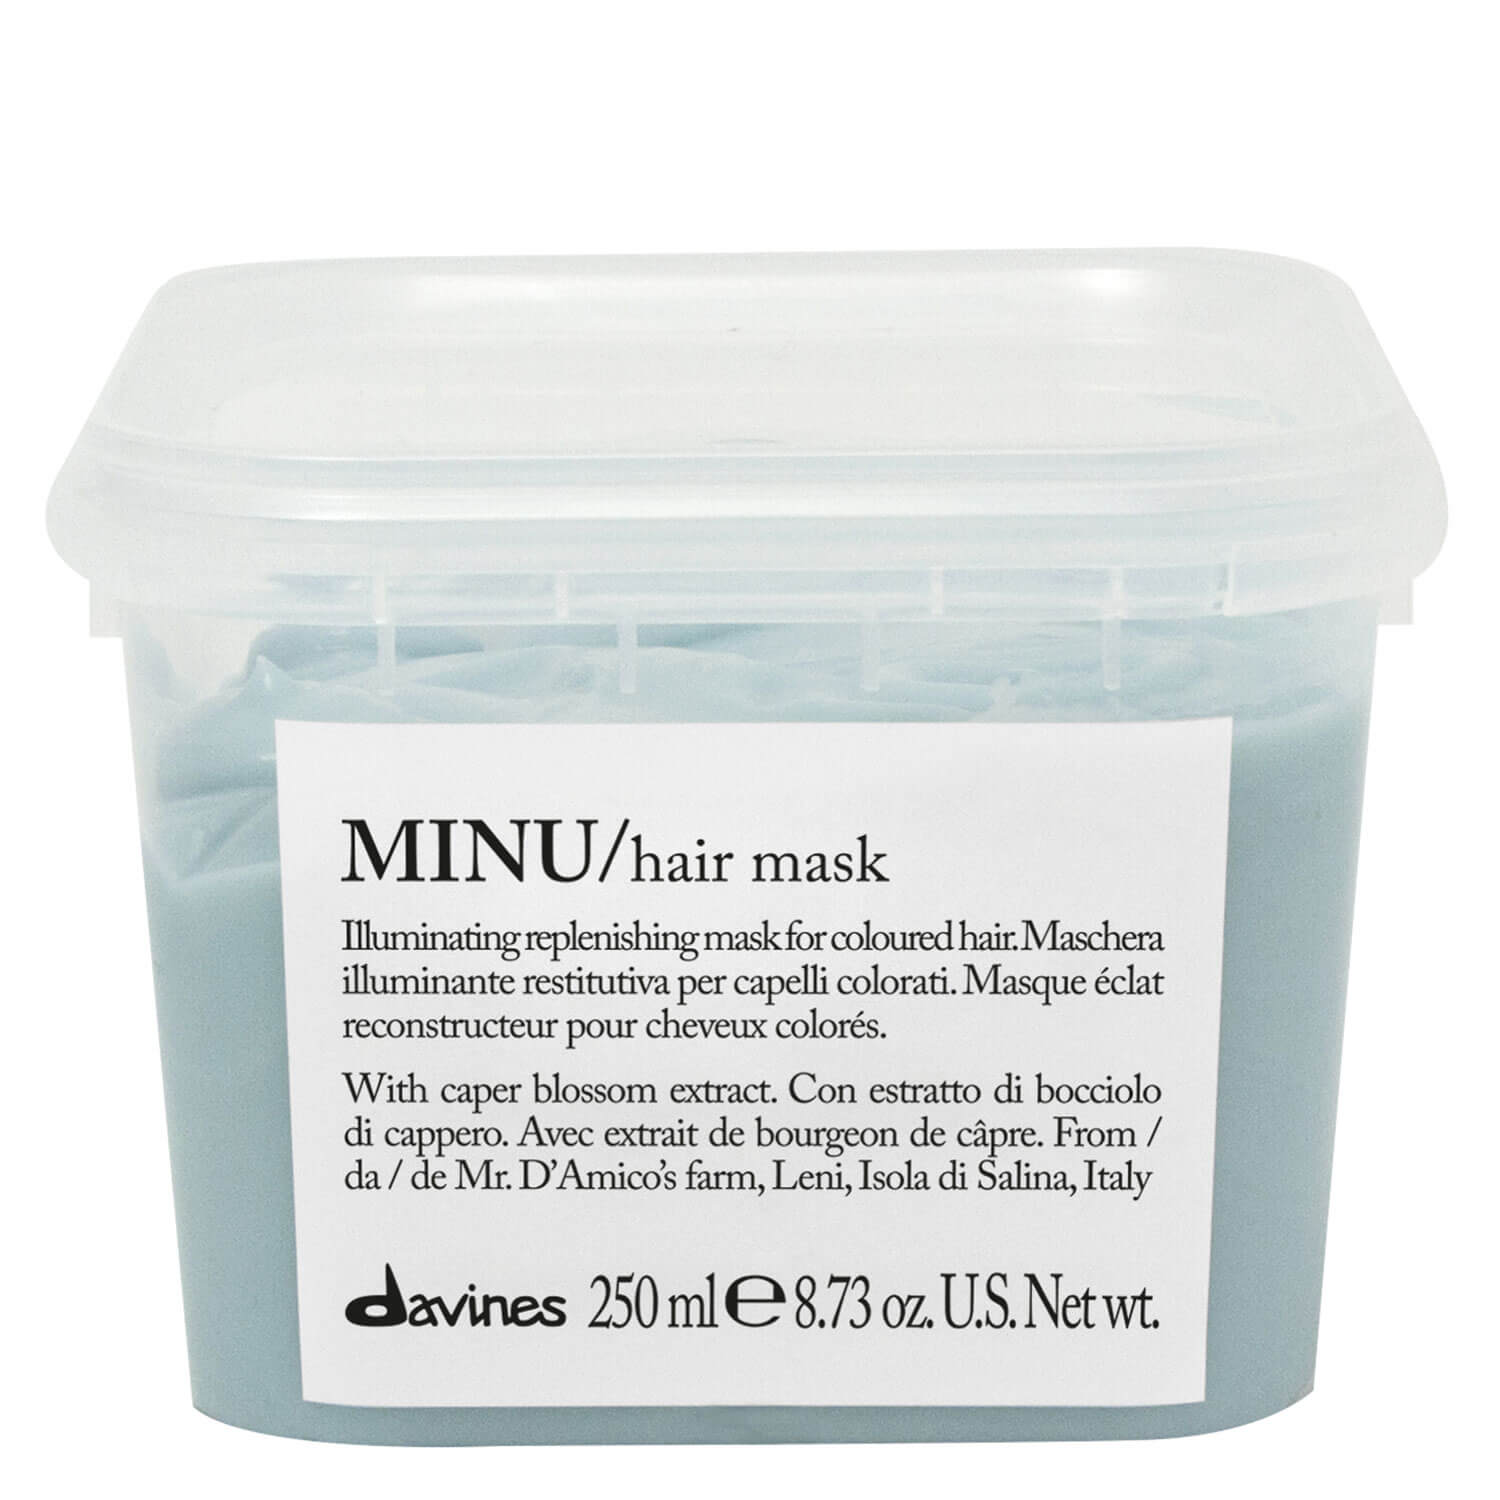 Essential Haircare - MINU Hair Mask